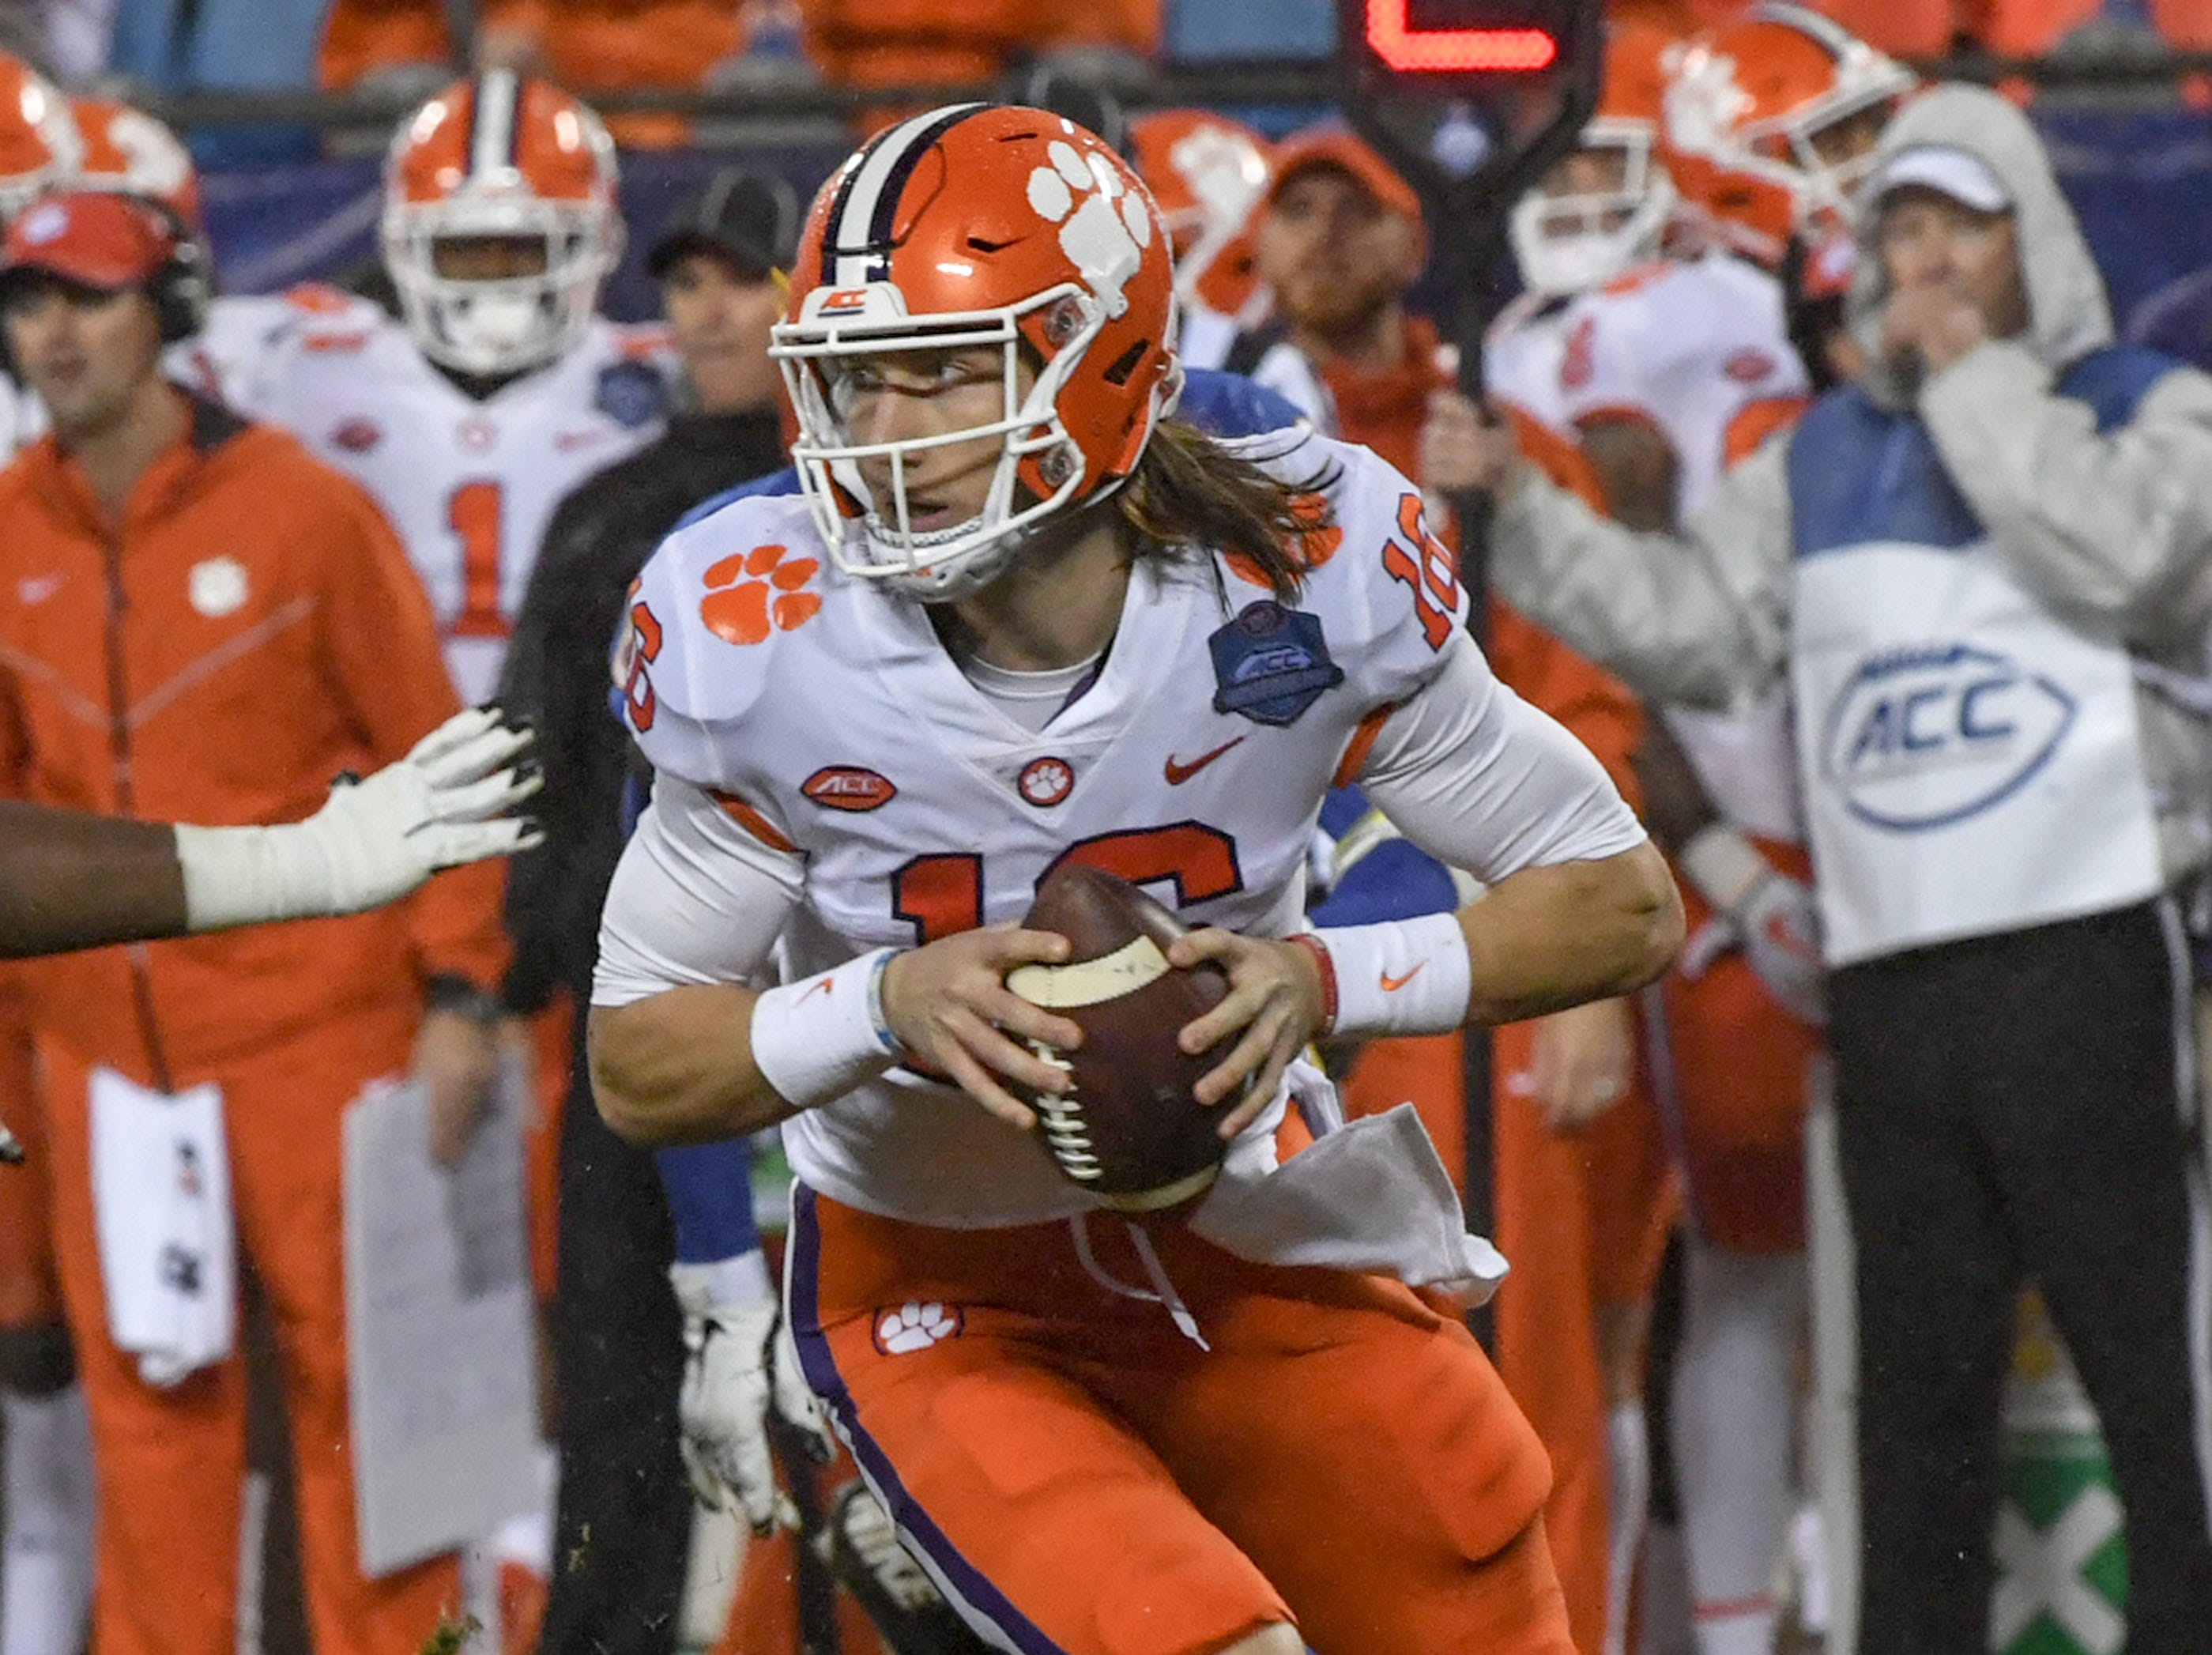 Clemson quarterback Trevor Lawrence (16) rolls out to pass against Pittsburgh during the second quarter of the Dr. Pepper ACC football championship at Bank of America Stadium in Charlotte, N.C. on Saturday, December 1, 2018.